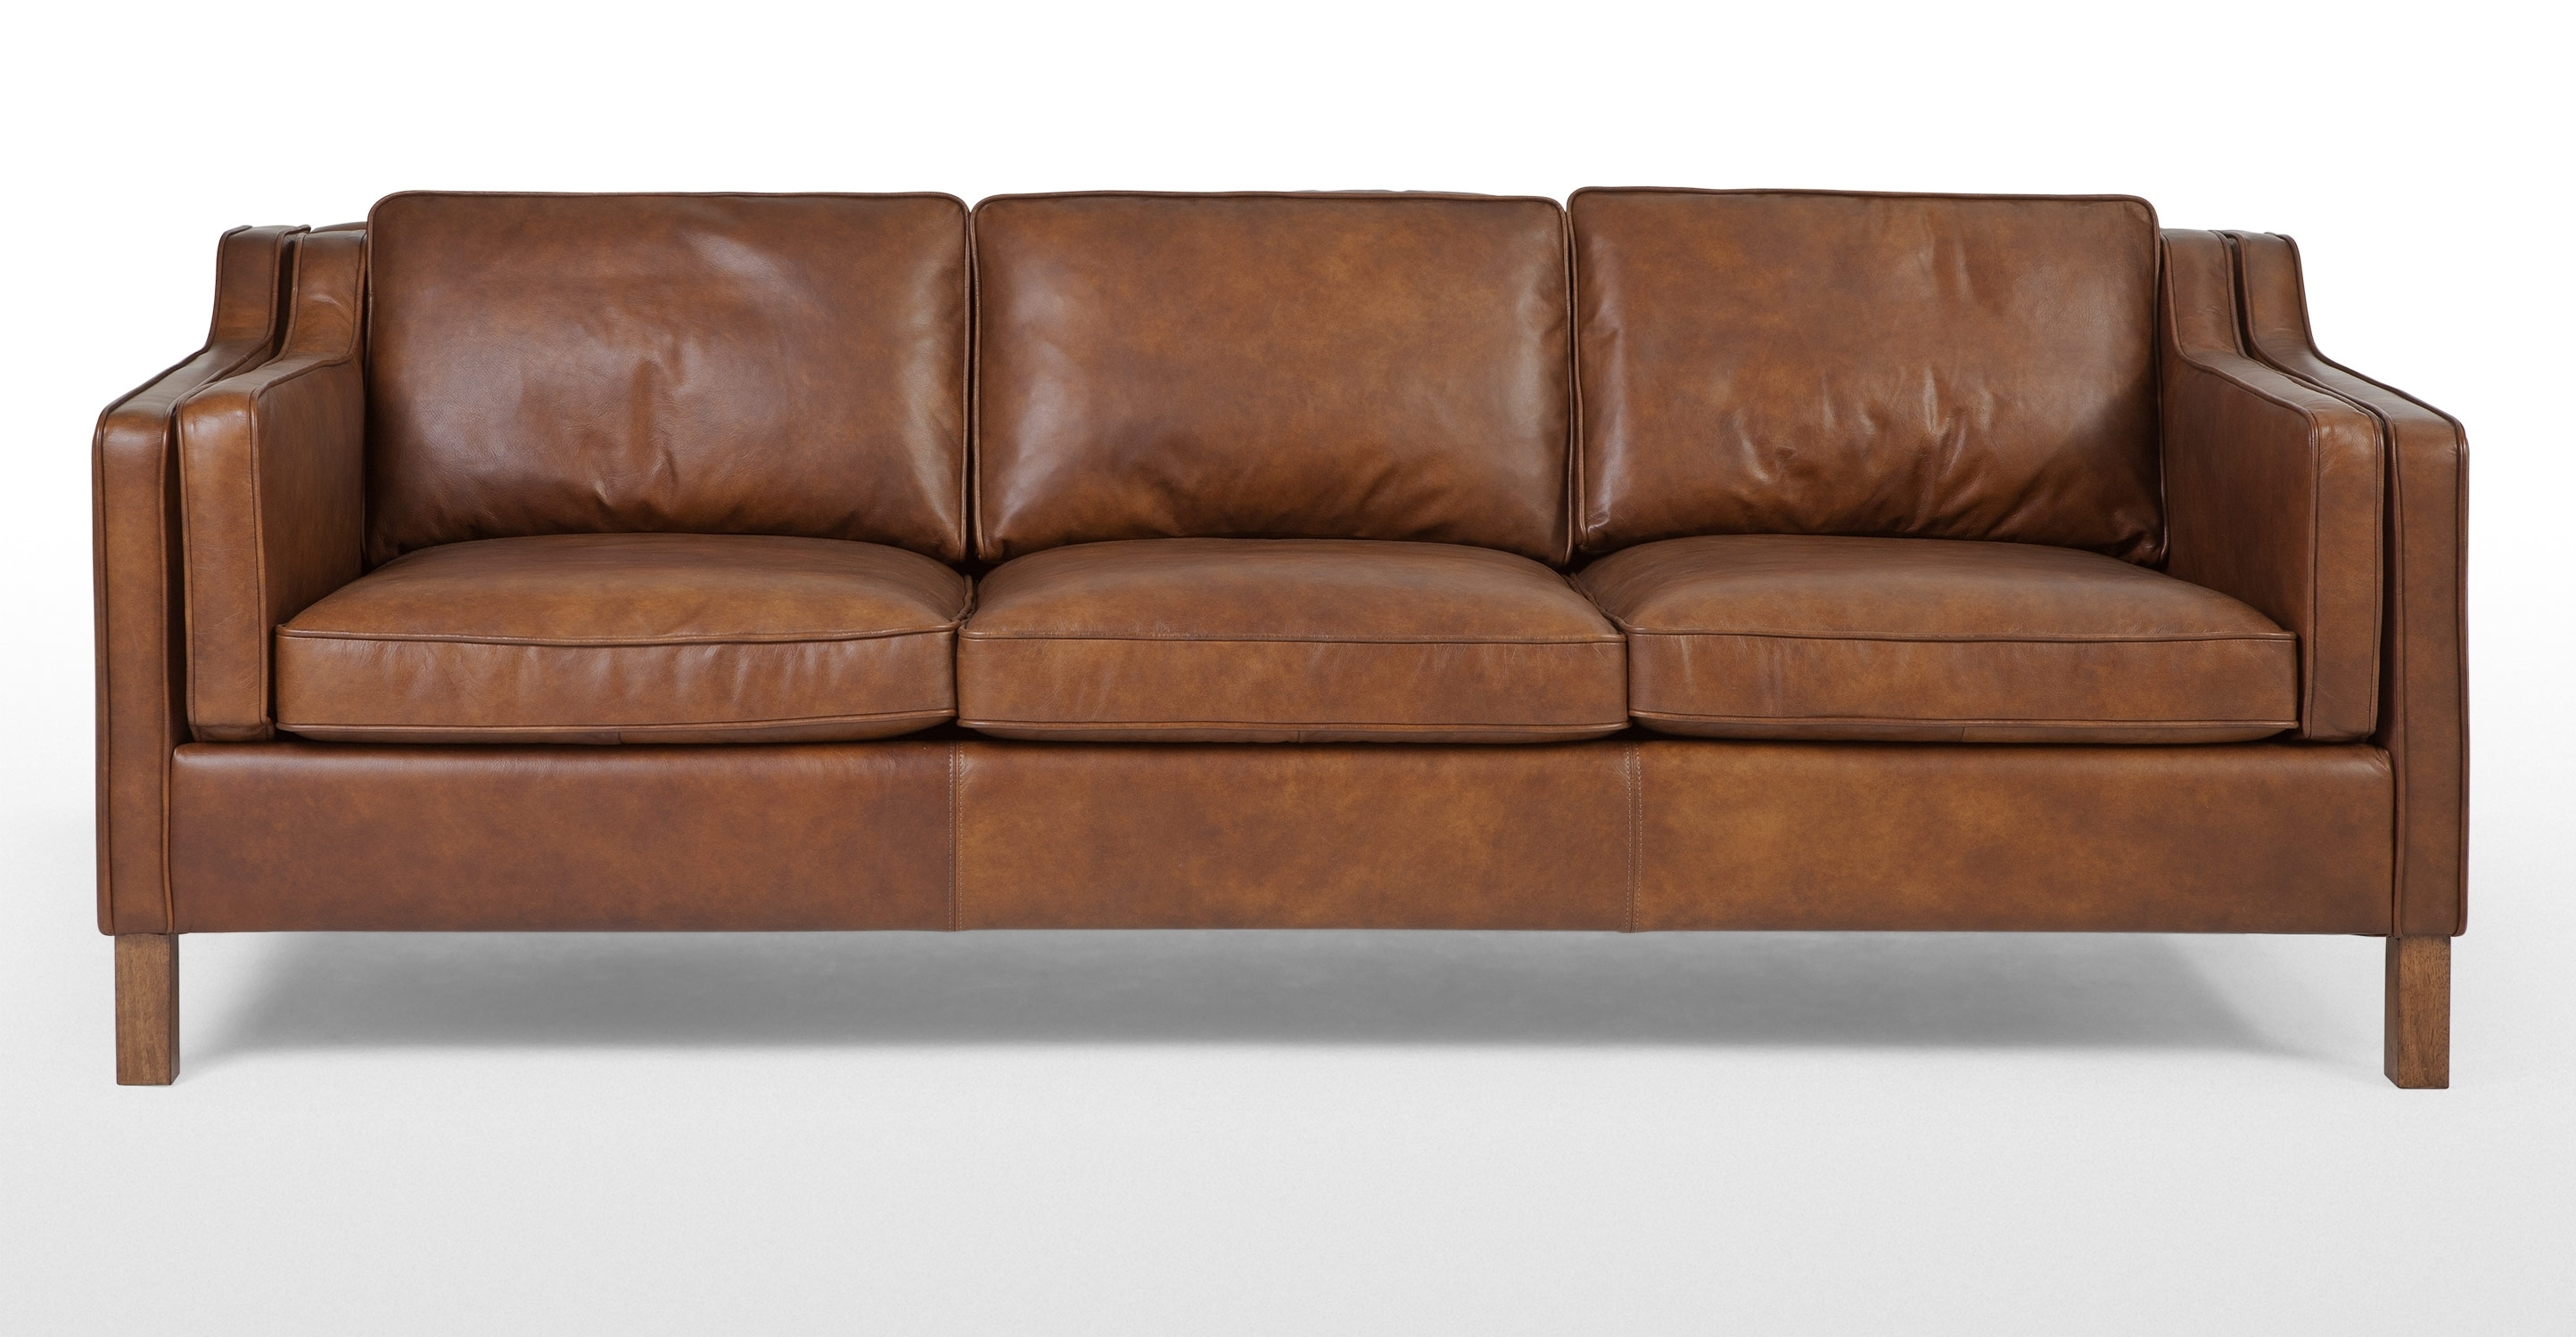 What Colours Go With Tan Adorable Tan Leather Sofa – Home Design Ideas Inside Well Known Light Tan Leather Sofas (View 11 of 15)